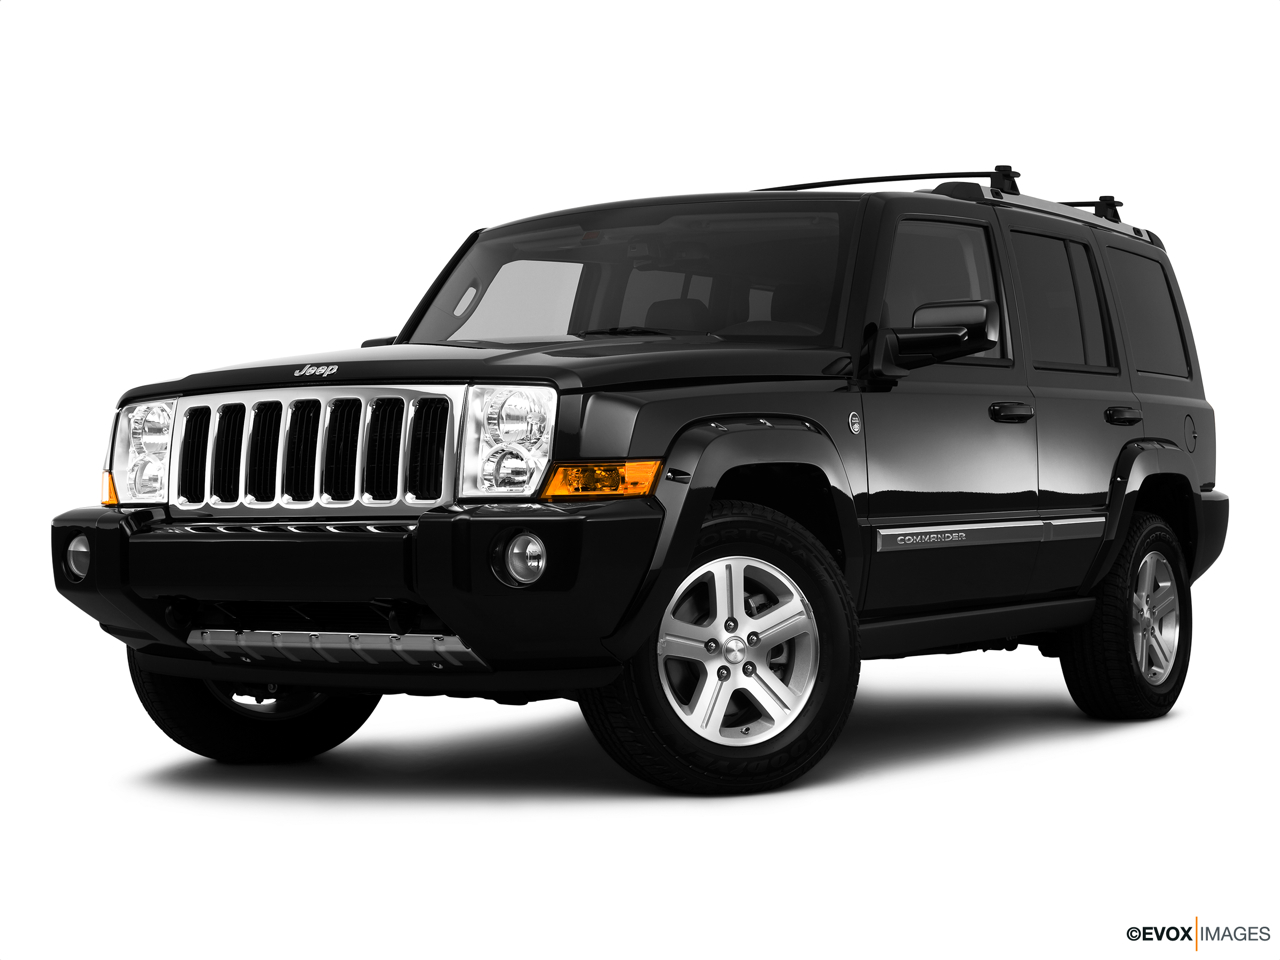 2010 Jeep Commander Limited Front angle medium view.